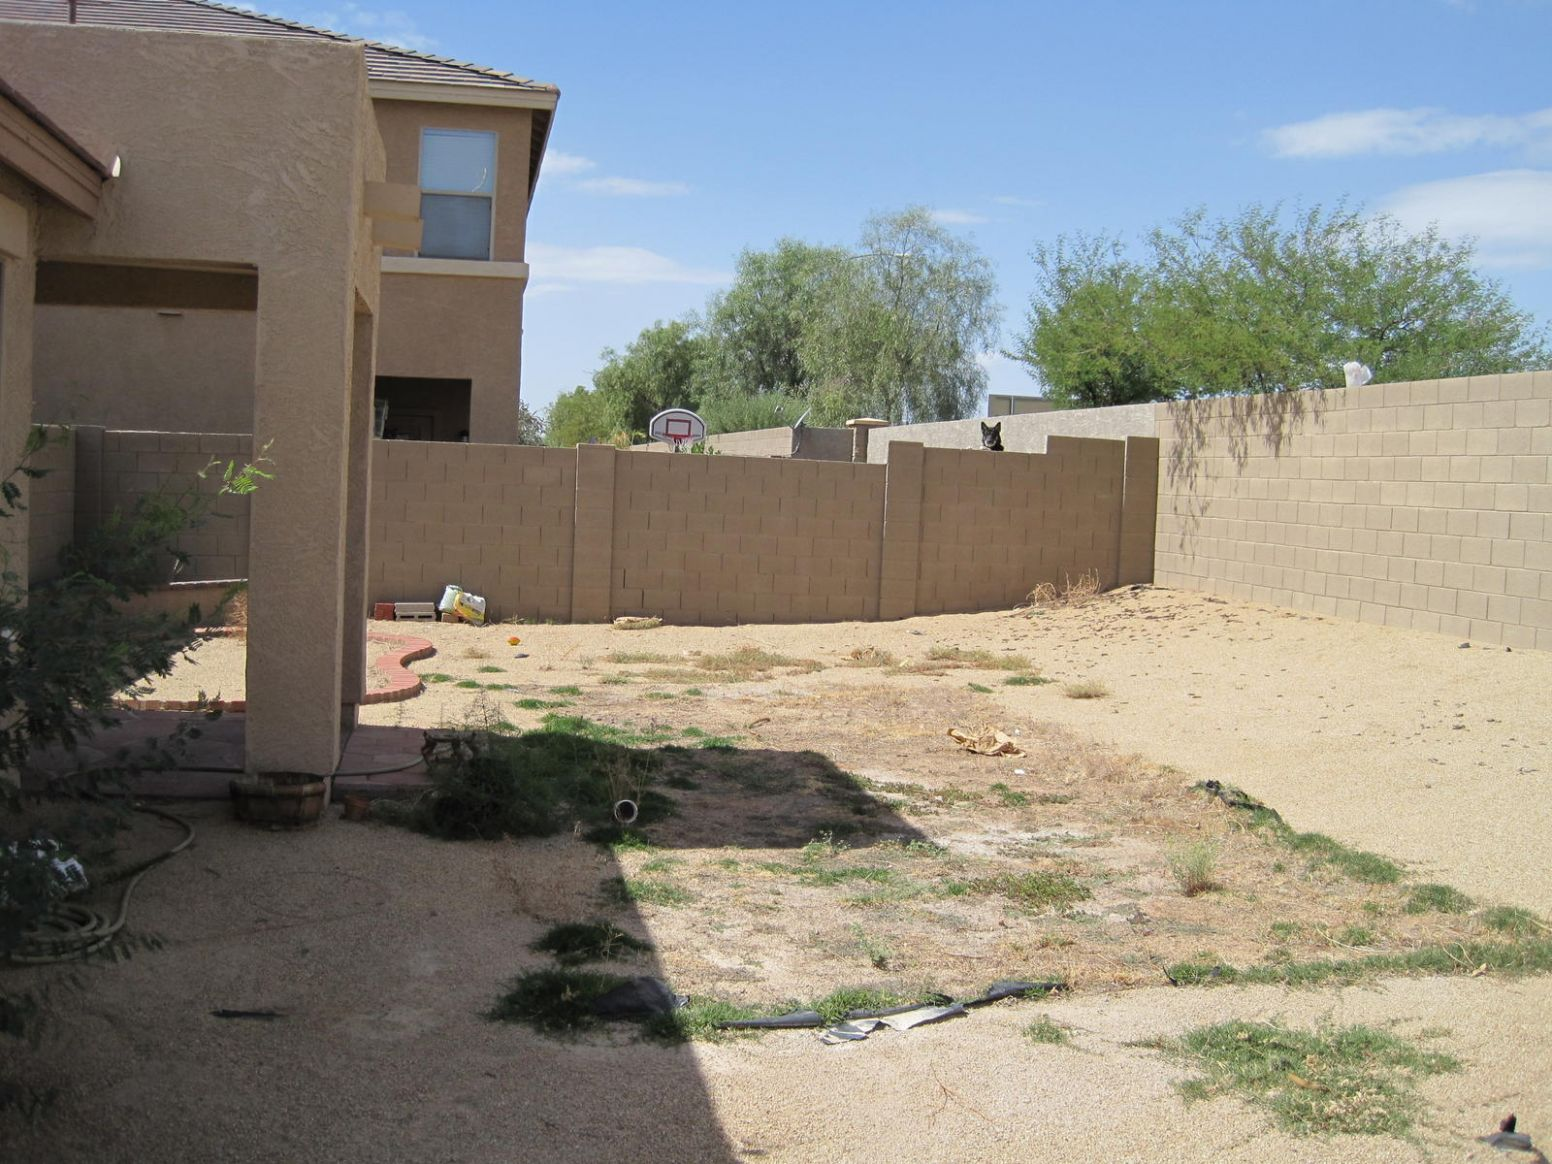 Whats would be the cheapest way to landscape this yard? (rental ...